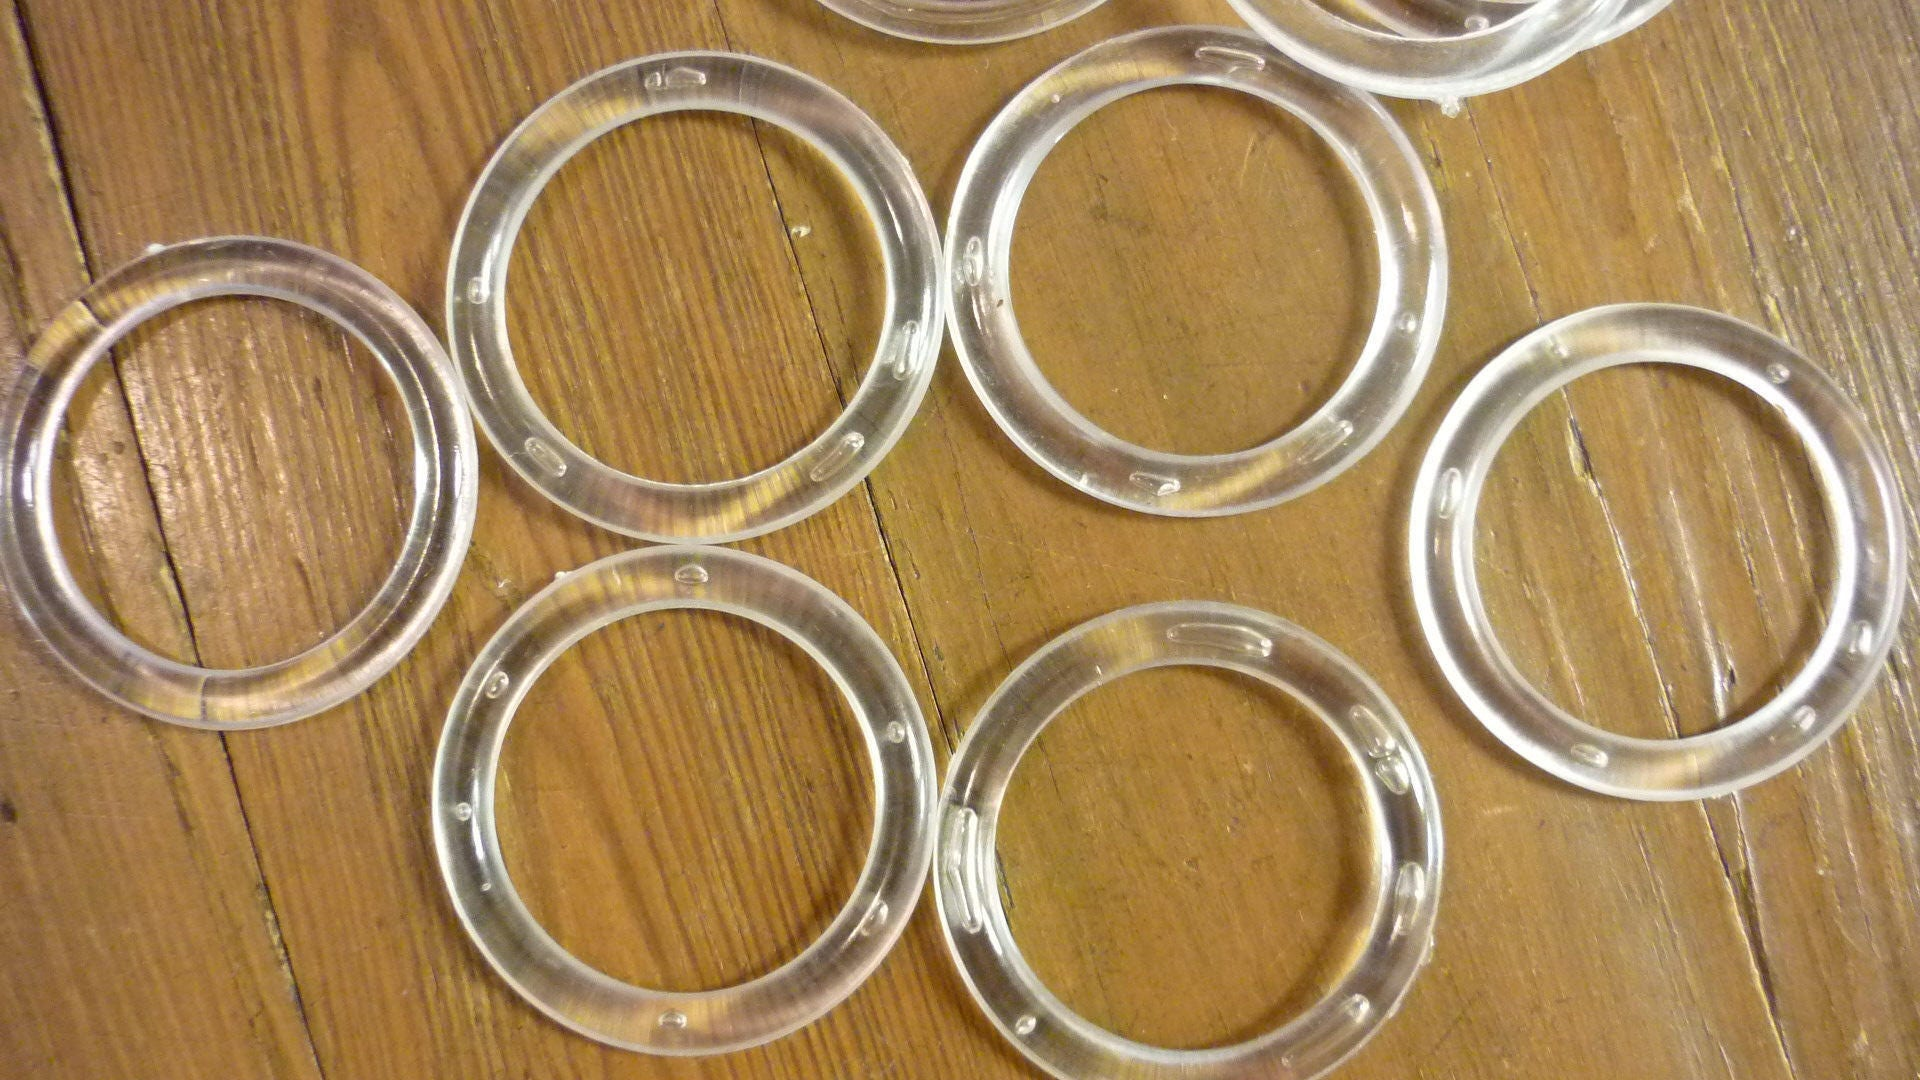 10 lg plastic rings craft rings 1 5 8 46mm clear craft for 3 inch rings for crafts